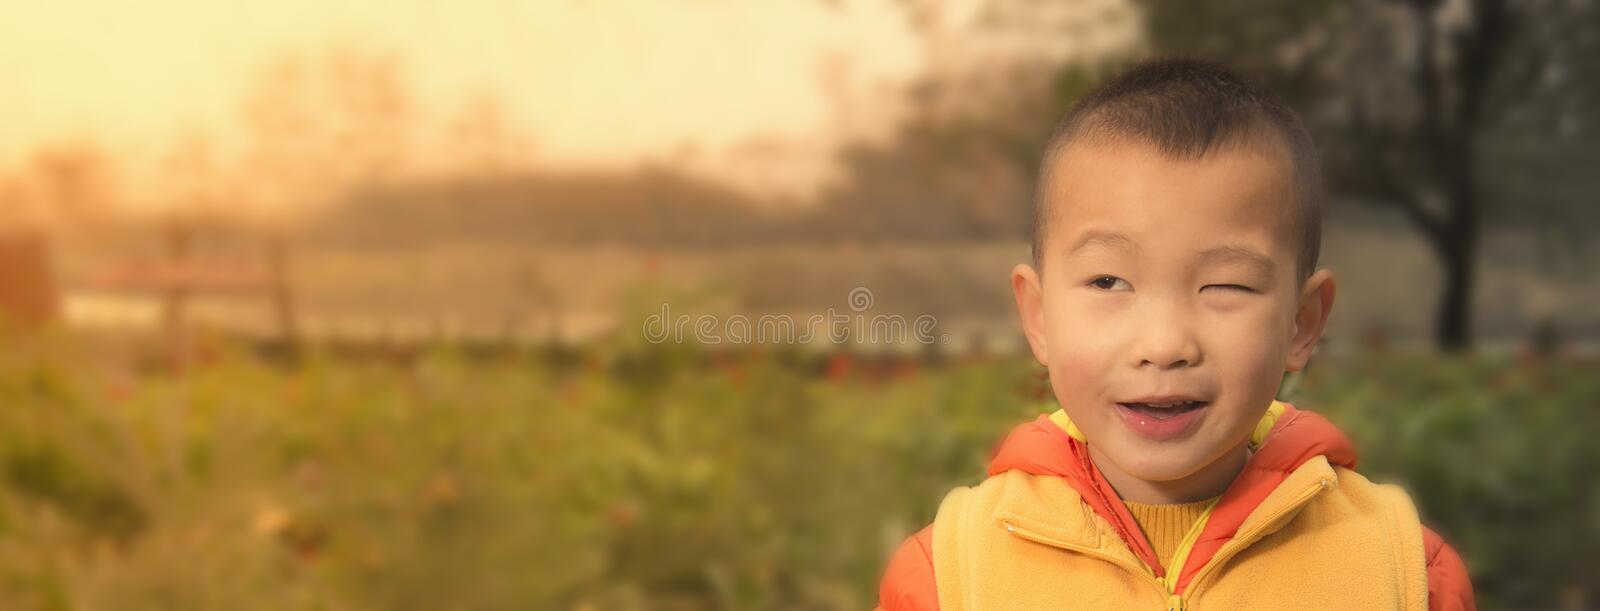 Cute kid expression. Closeup outdoor , closing one eye royalty free stock photography